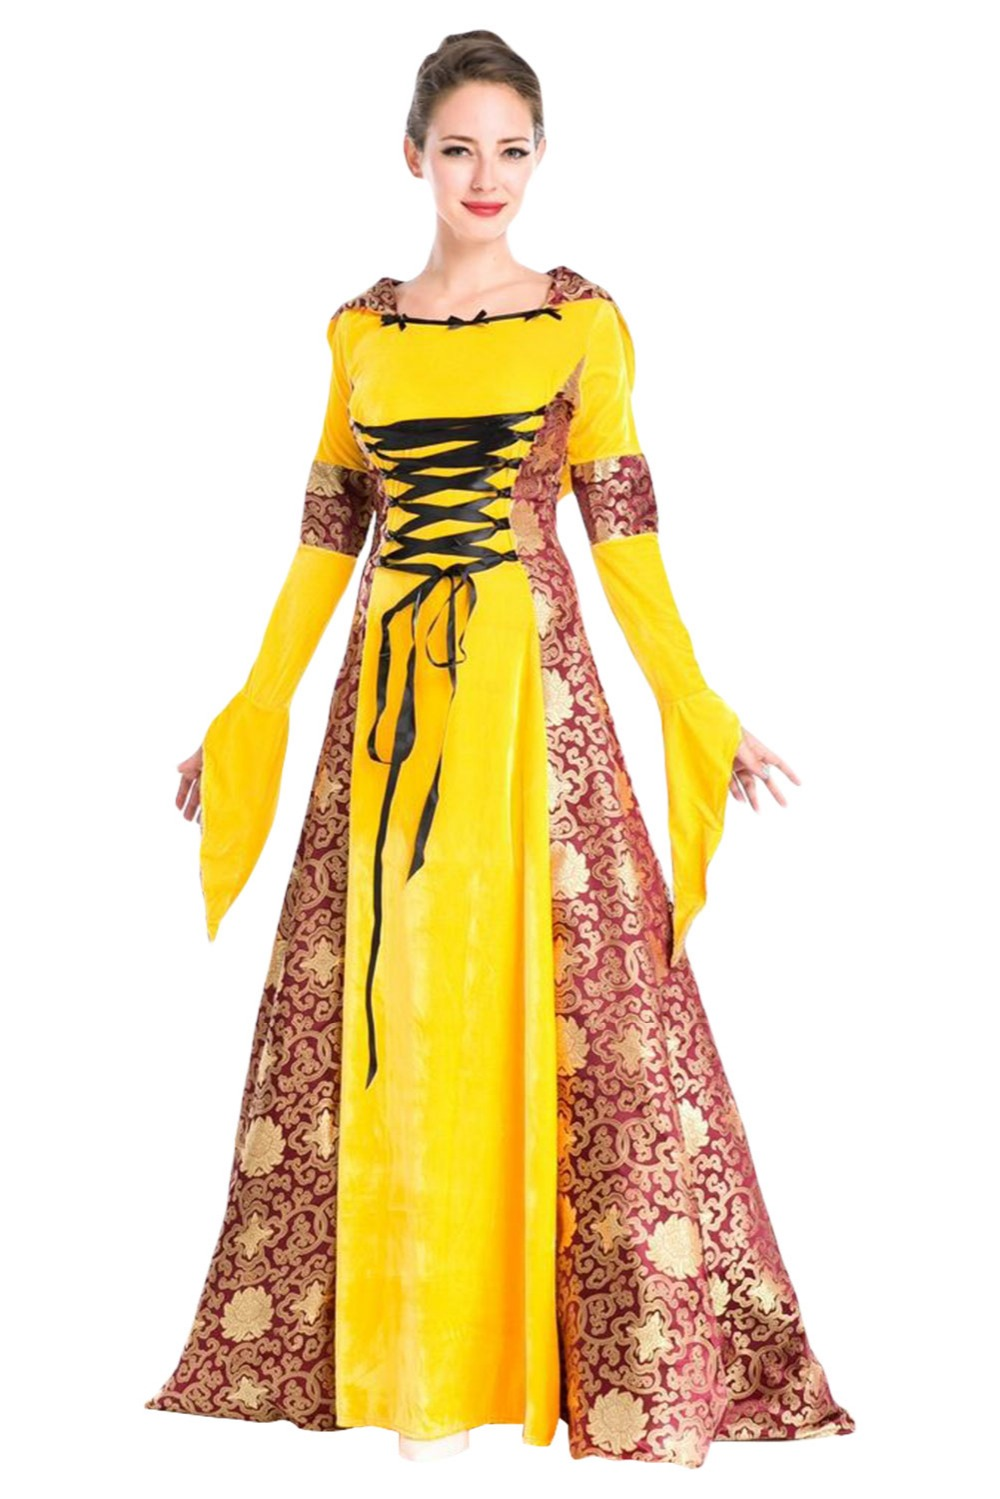 European Retro palace aristocratic Dress costume British Queen Halloween costume Adult Women